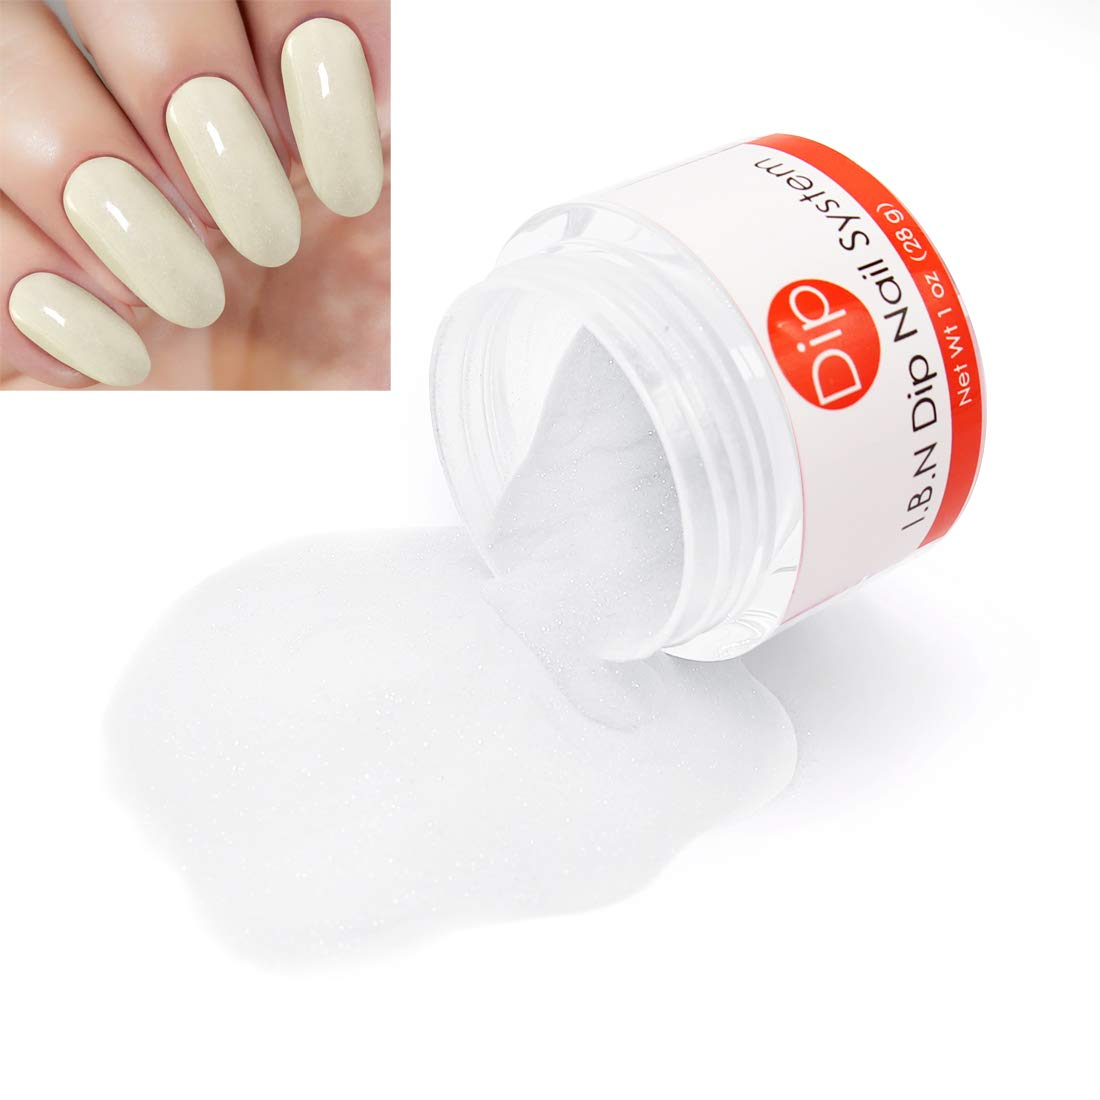 Ivory-White Dipping Powder (Added Vitamins) I.B.N Nail Dip Acrylic Powder DIY Manicure Salon Home Use, 1 Ounce (DIP 035)